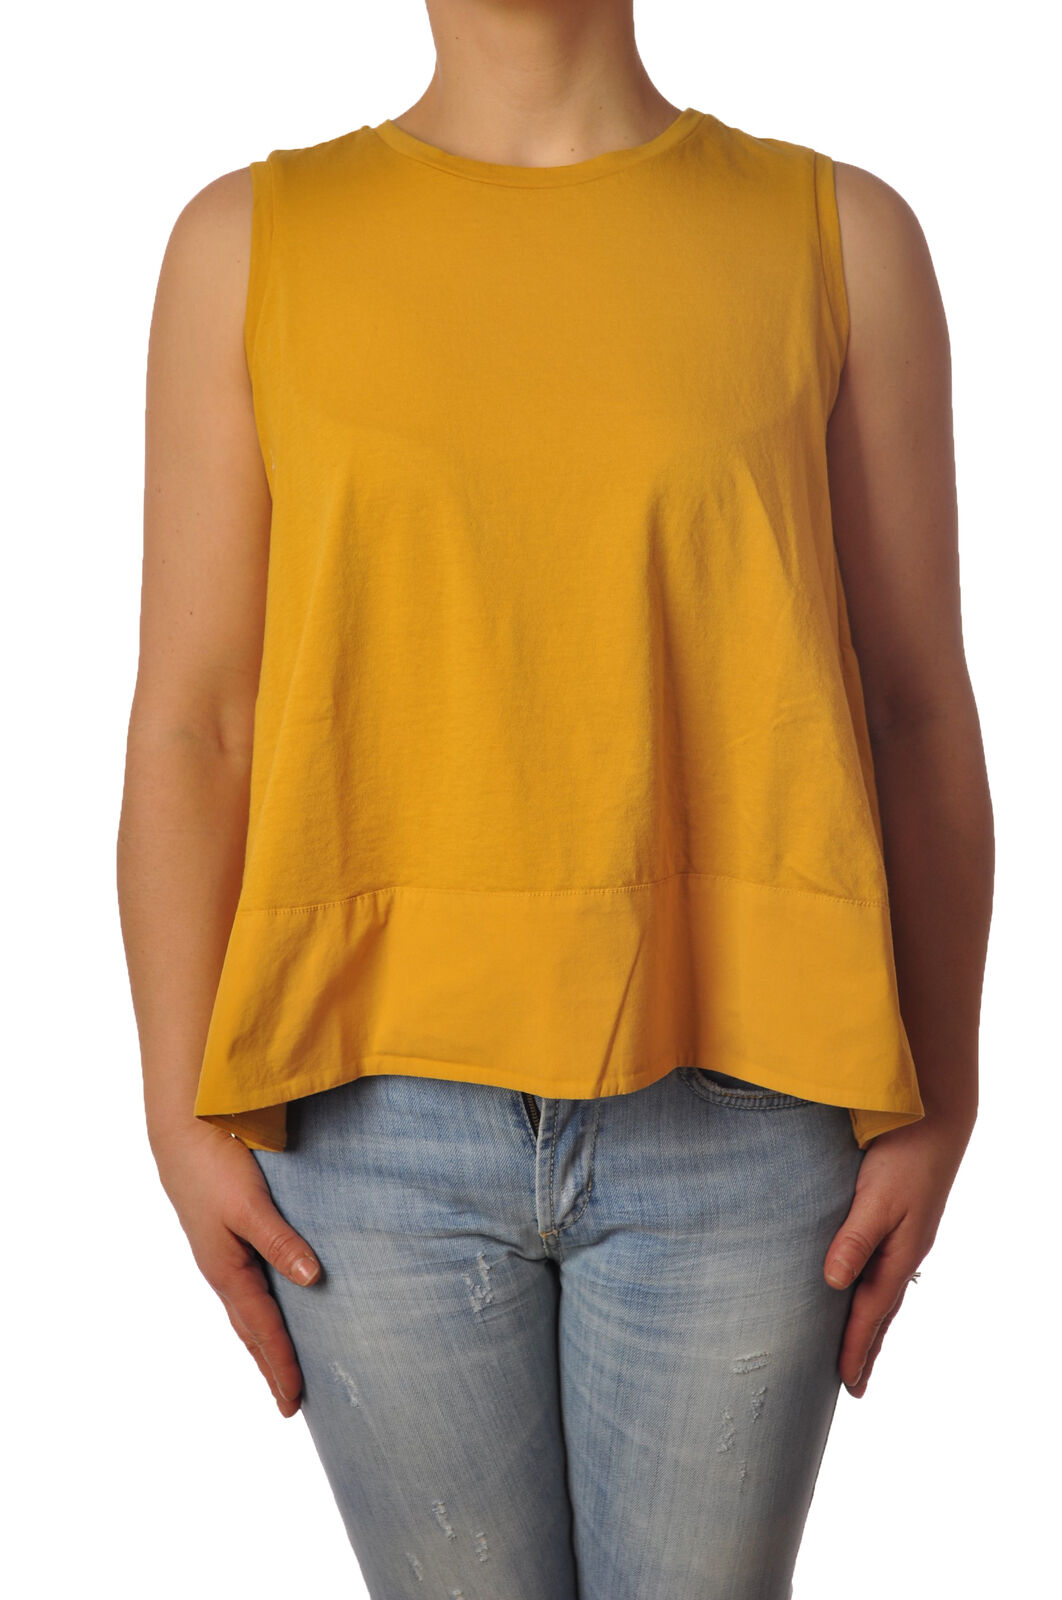 Ottod'ame - Topwear-Sleeveless Top - Woman - Yellow - 4942526E184001